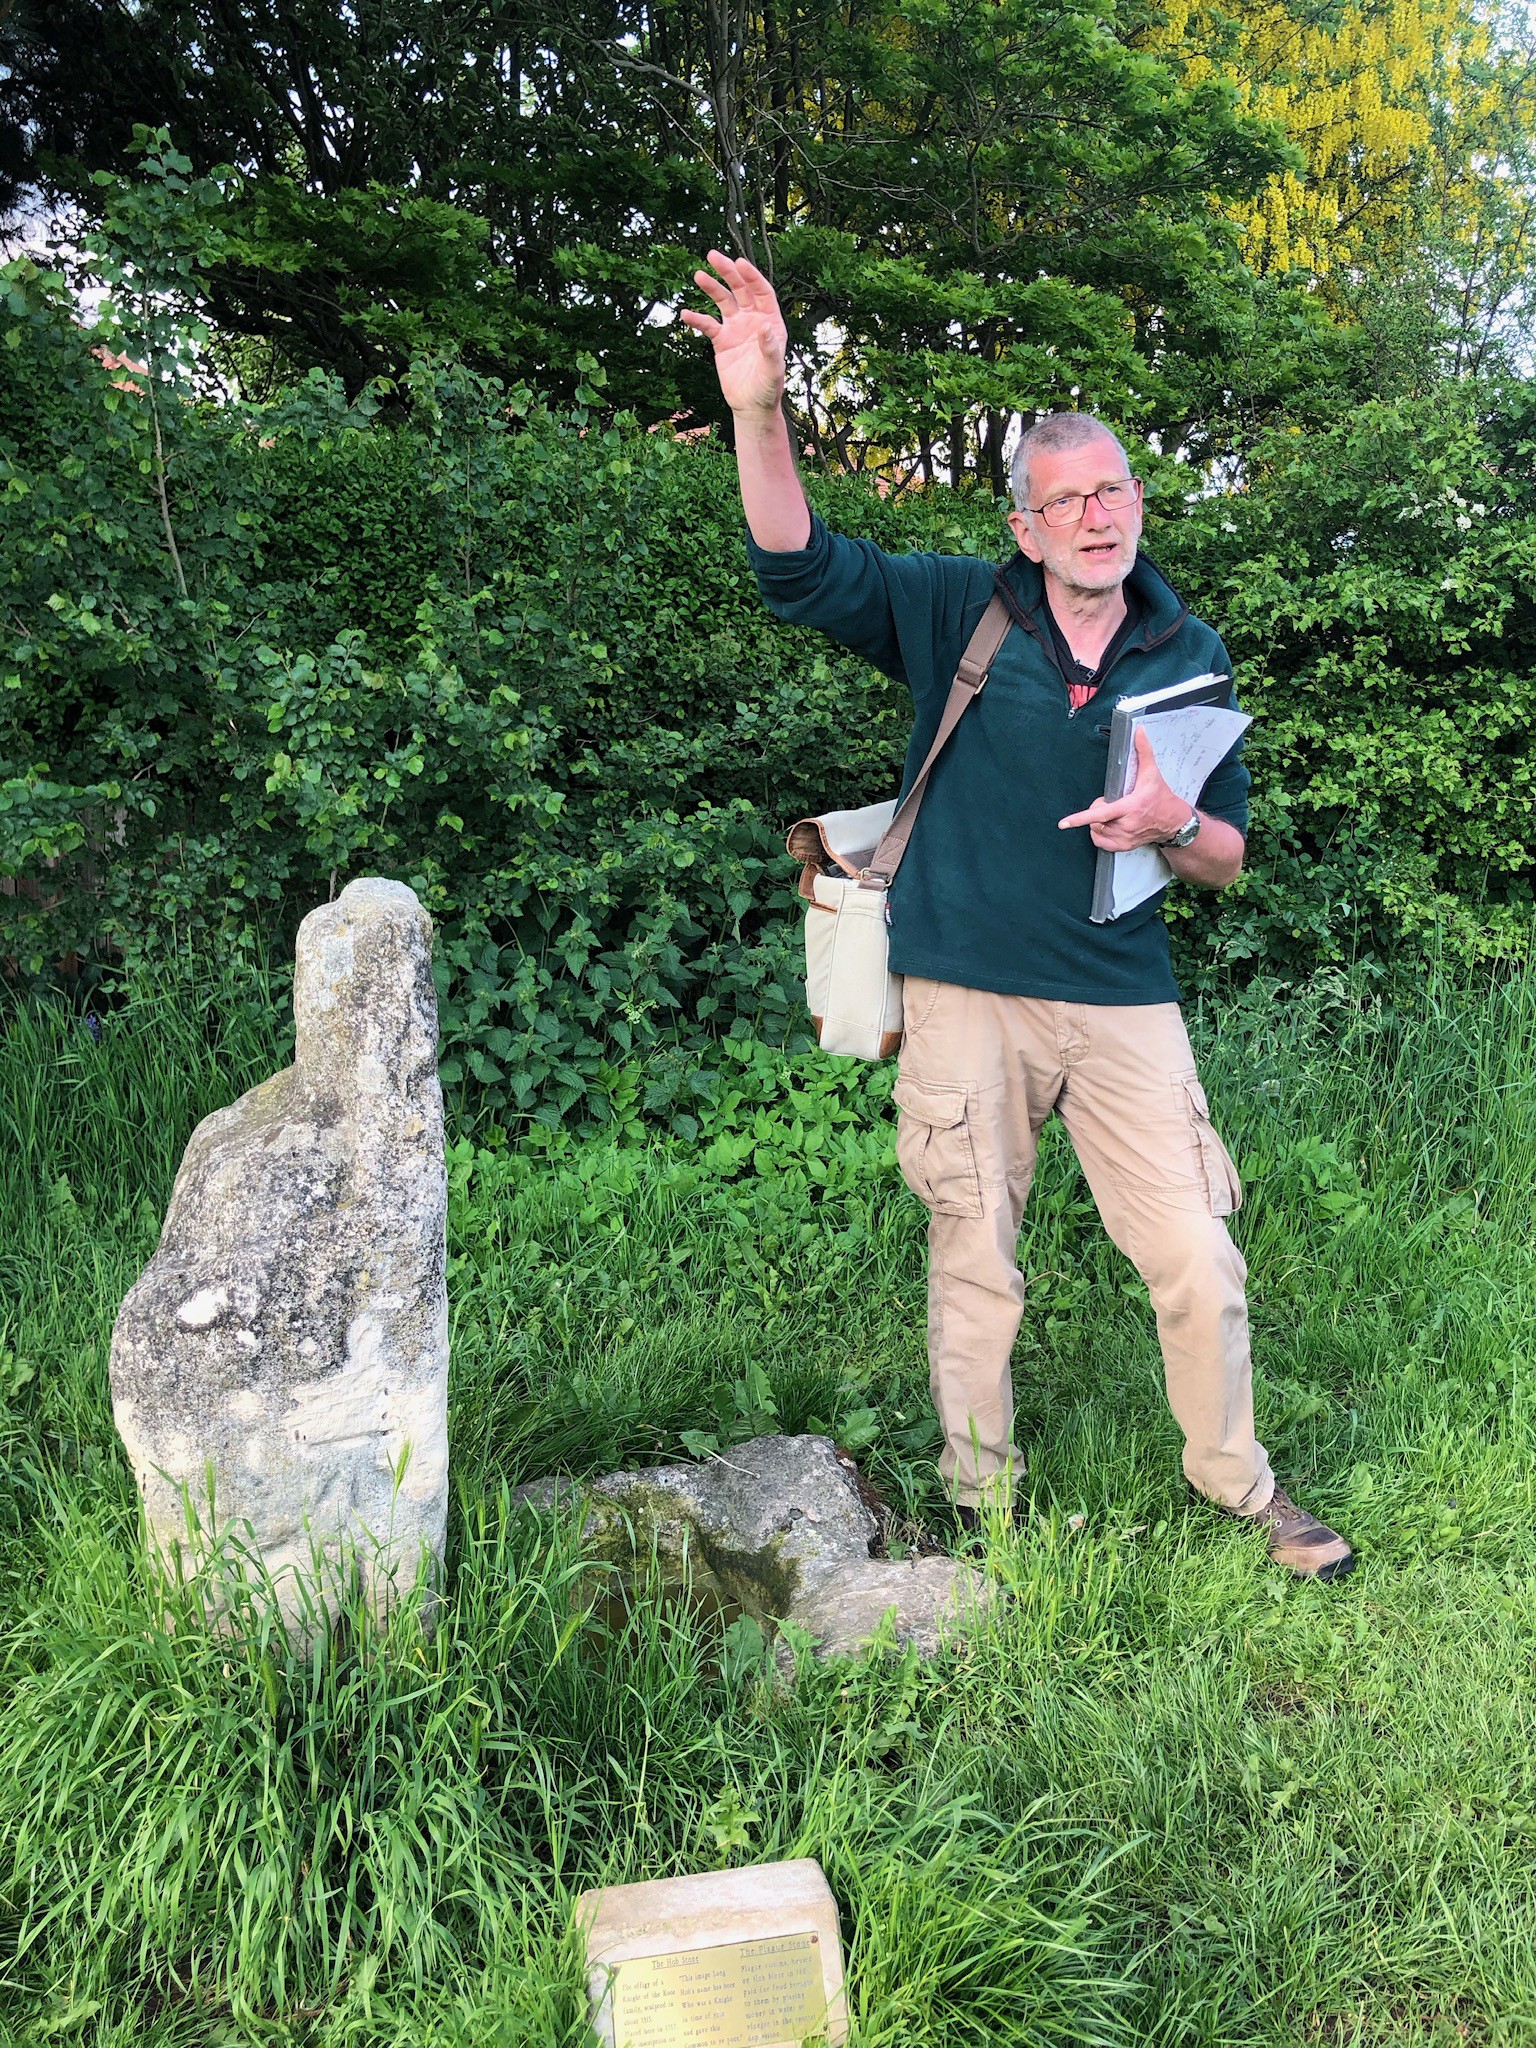 Prof Stewart Ainsworth at the Hob Stone in York during the filming of the My Place in Time short film.